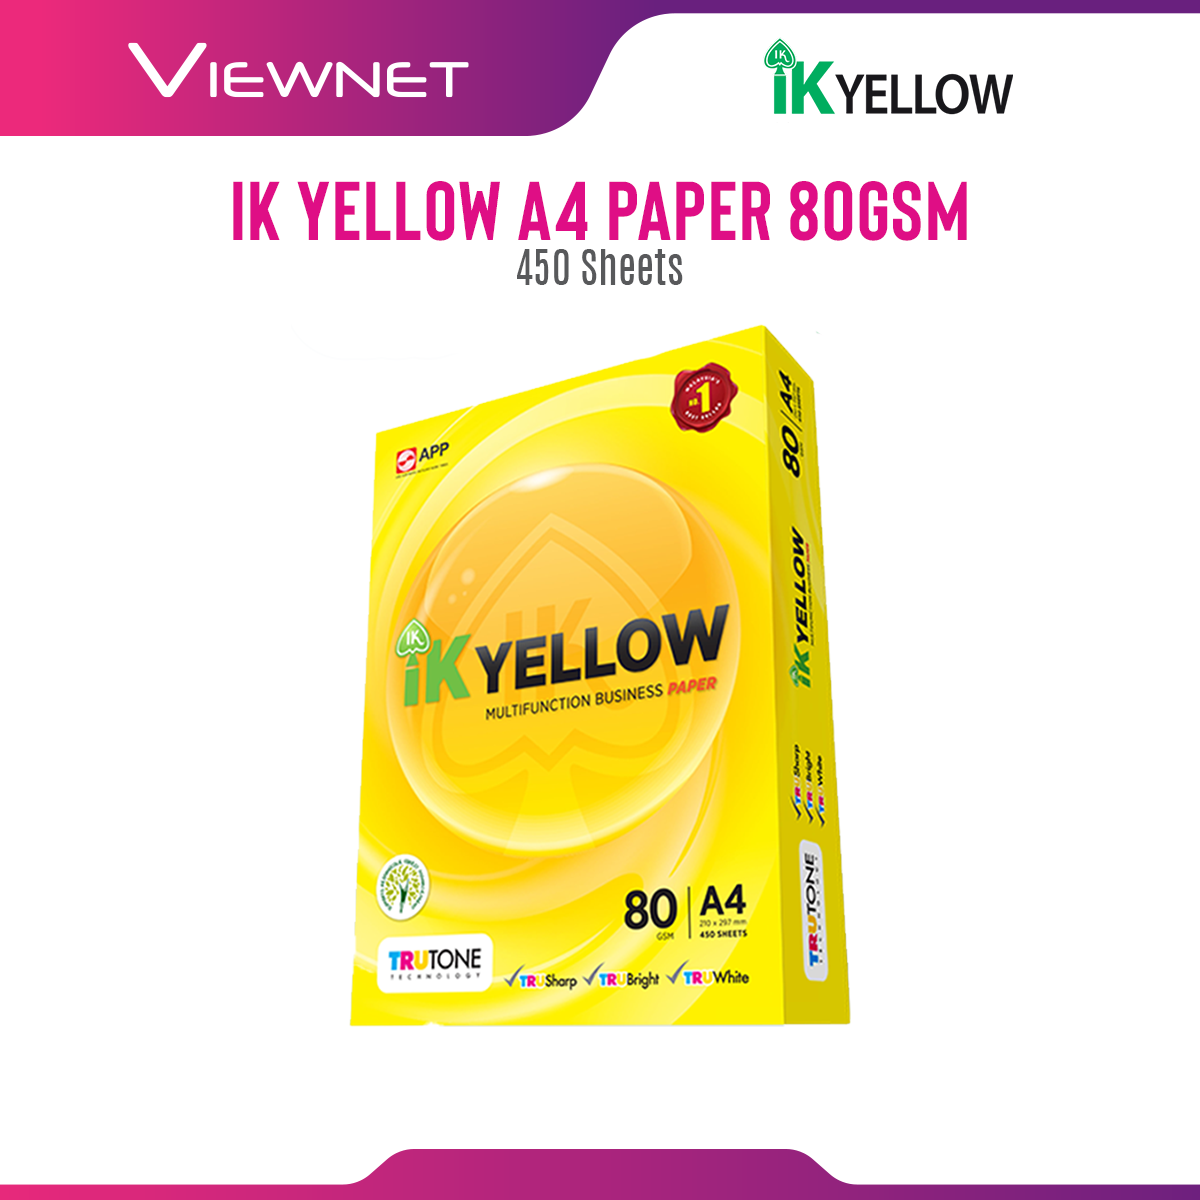 IK Yellow A4 70gsm/80gsm Multifunction Business Copier Paper (450 Sheets) Suitable for Photocopier, Laser Printer, Fax Machine, Ink-jet Printer, & 2 Side Copying